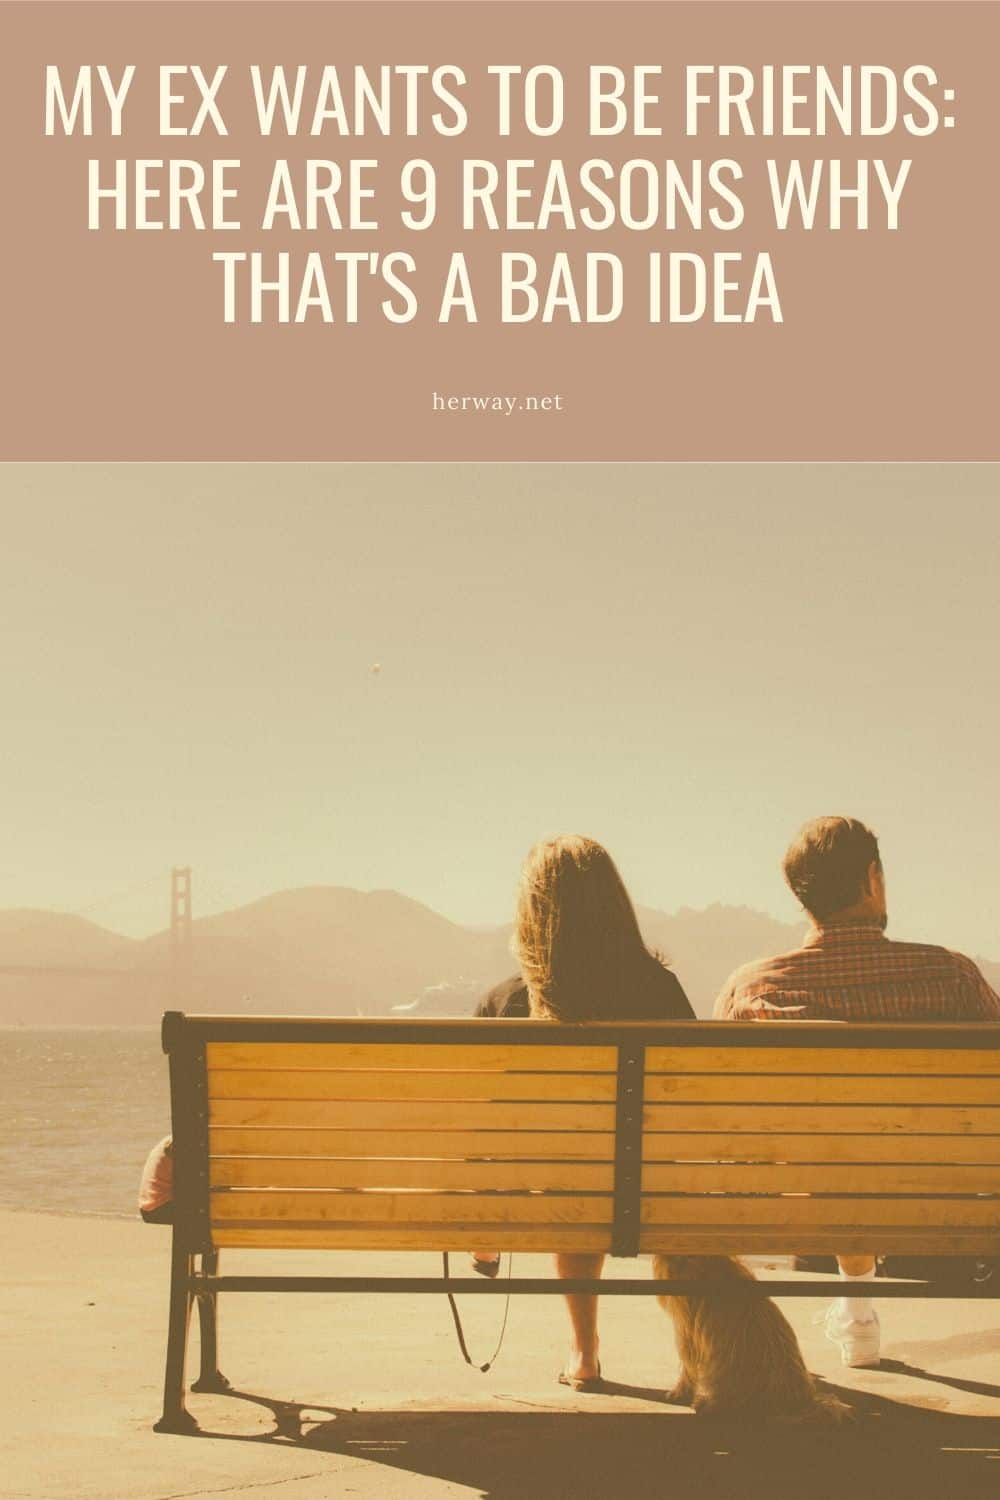 My Ex Wants To Be Friends_ Here Are 9 Reasons Why That's A Bad Idea Pinterest